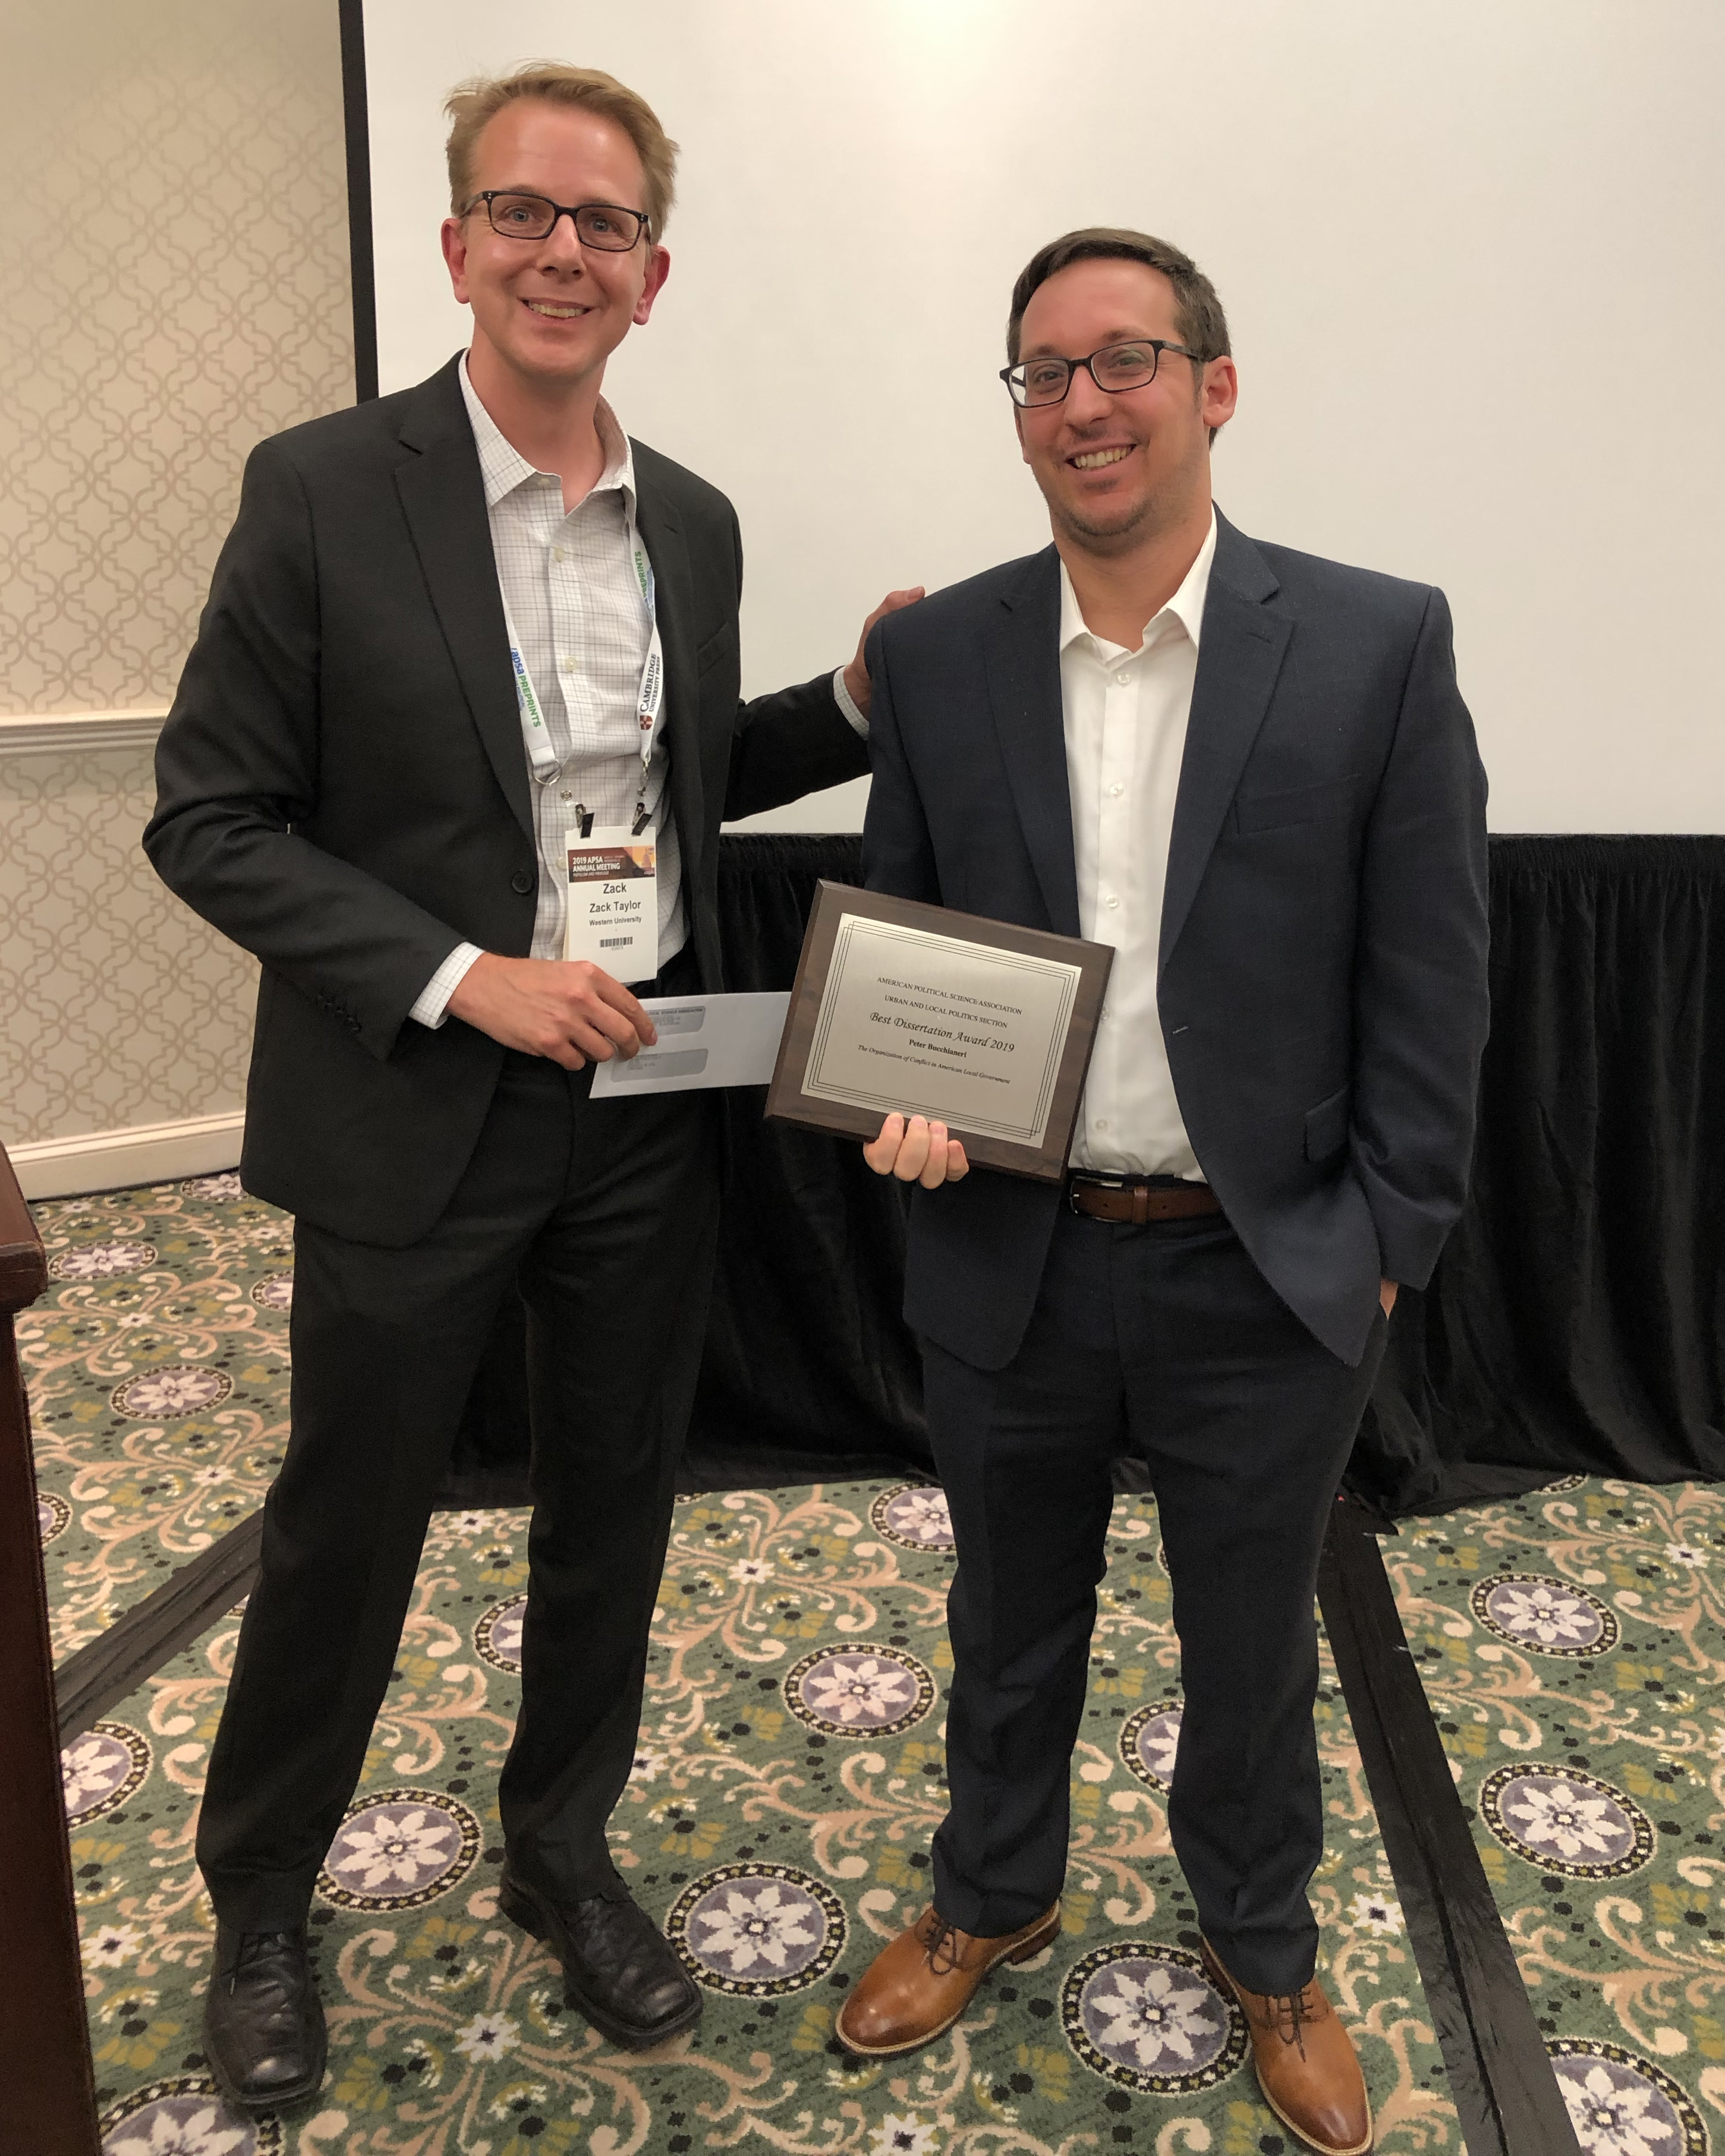 Zack Taylor presents the Best Dissertation Award to Peter Bucchanieri at the 2019 APSA conference.